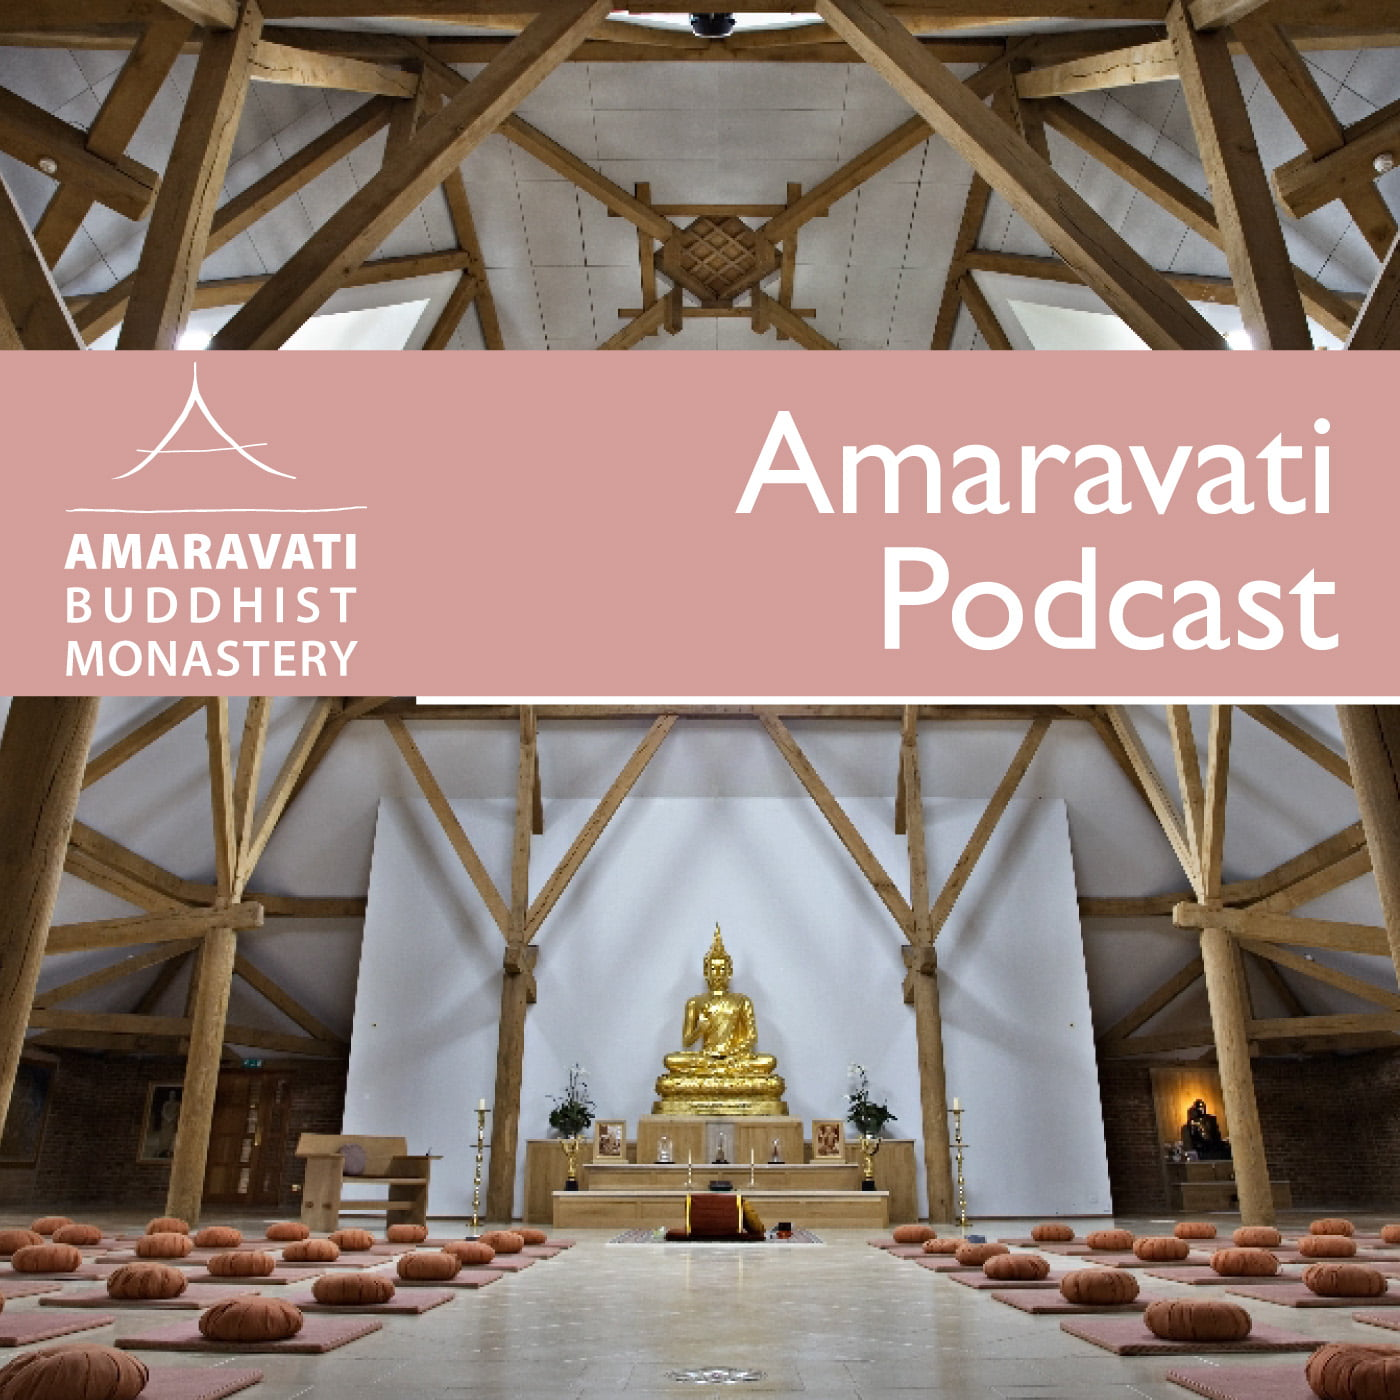 Dhamma Talks - Amaravati Podcast